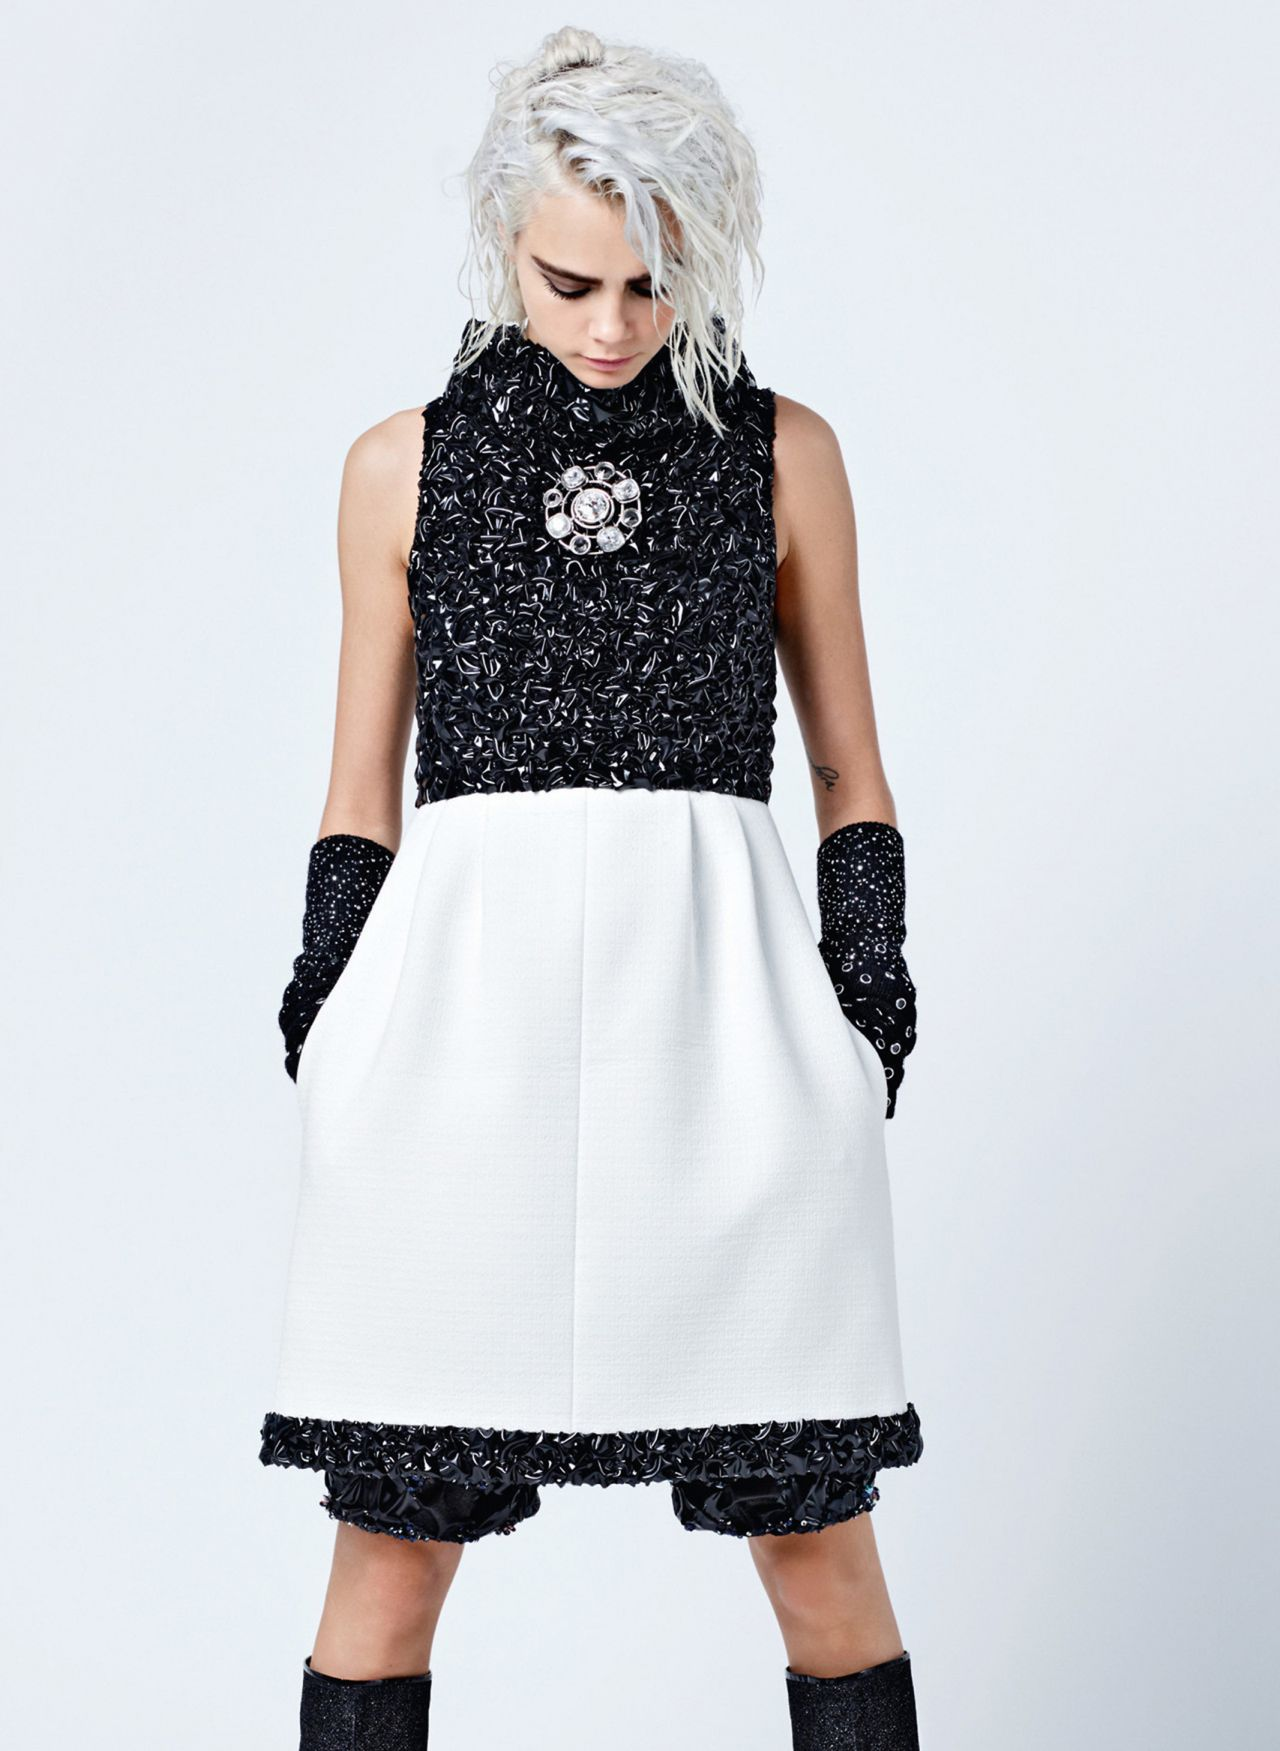 Cara Delevingne – Chanel Fall/Winter Collection 2017-2018 ...